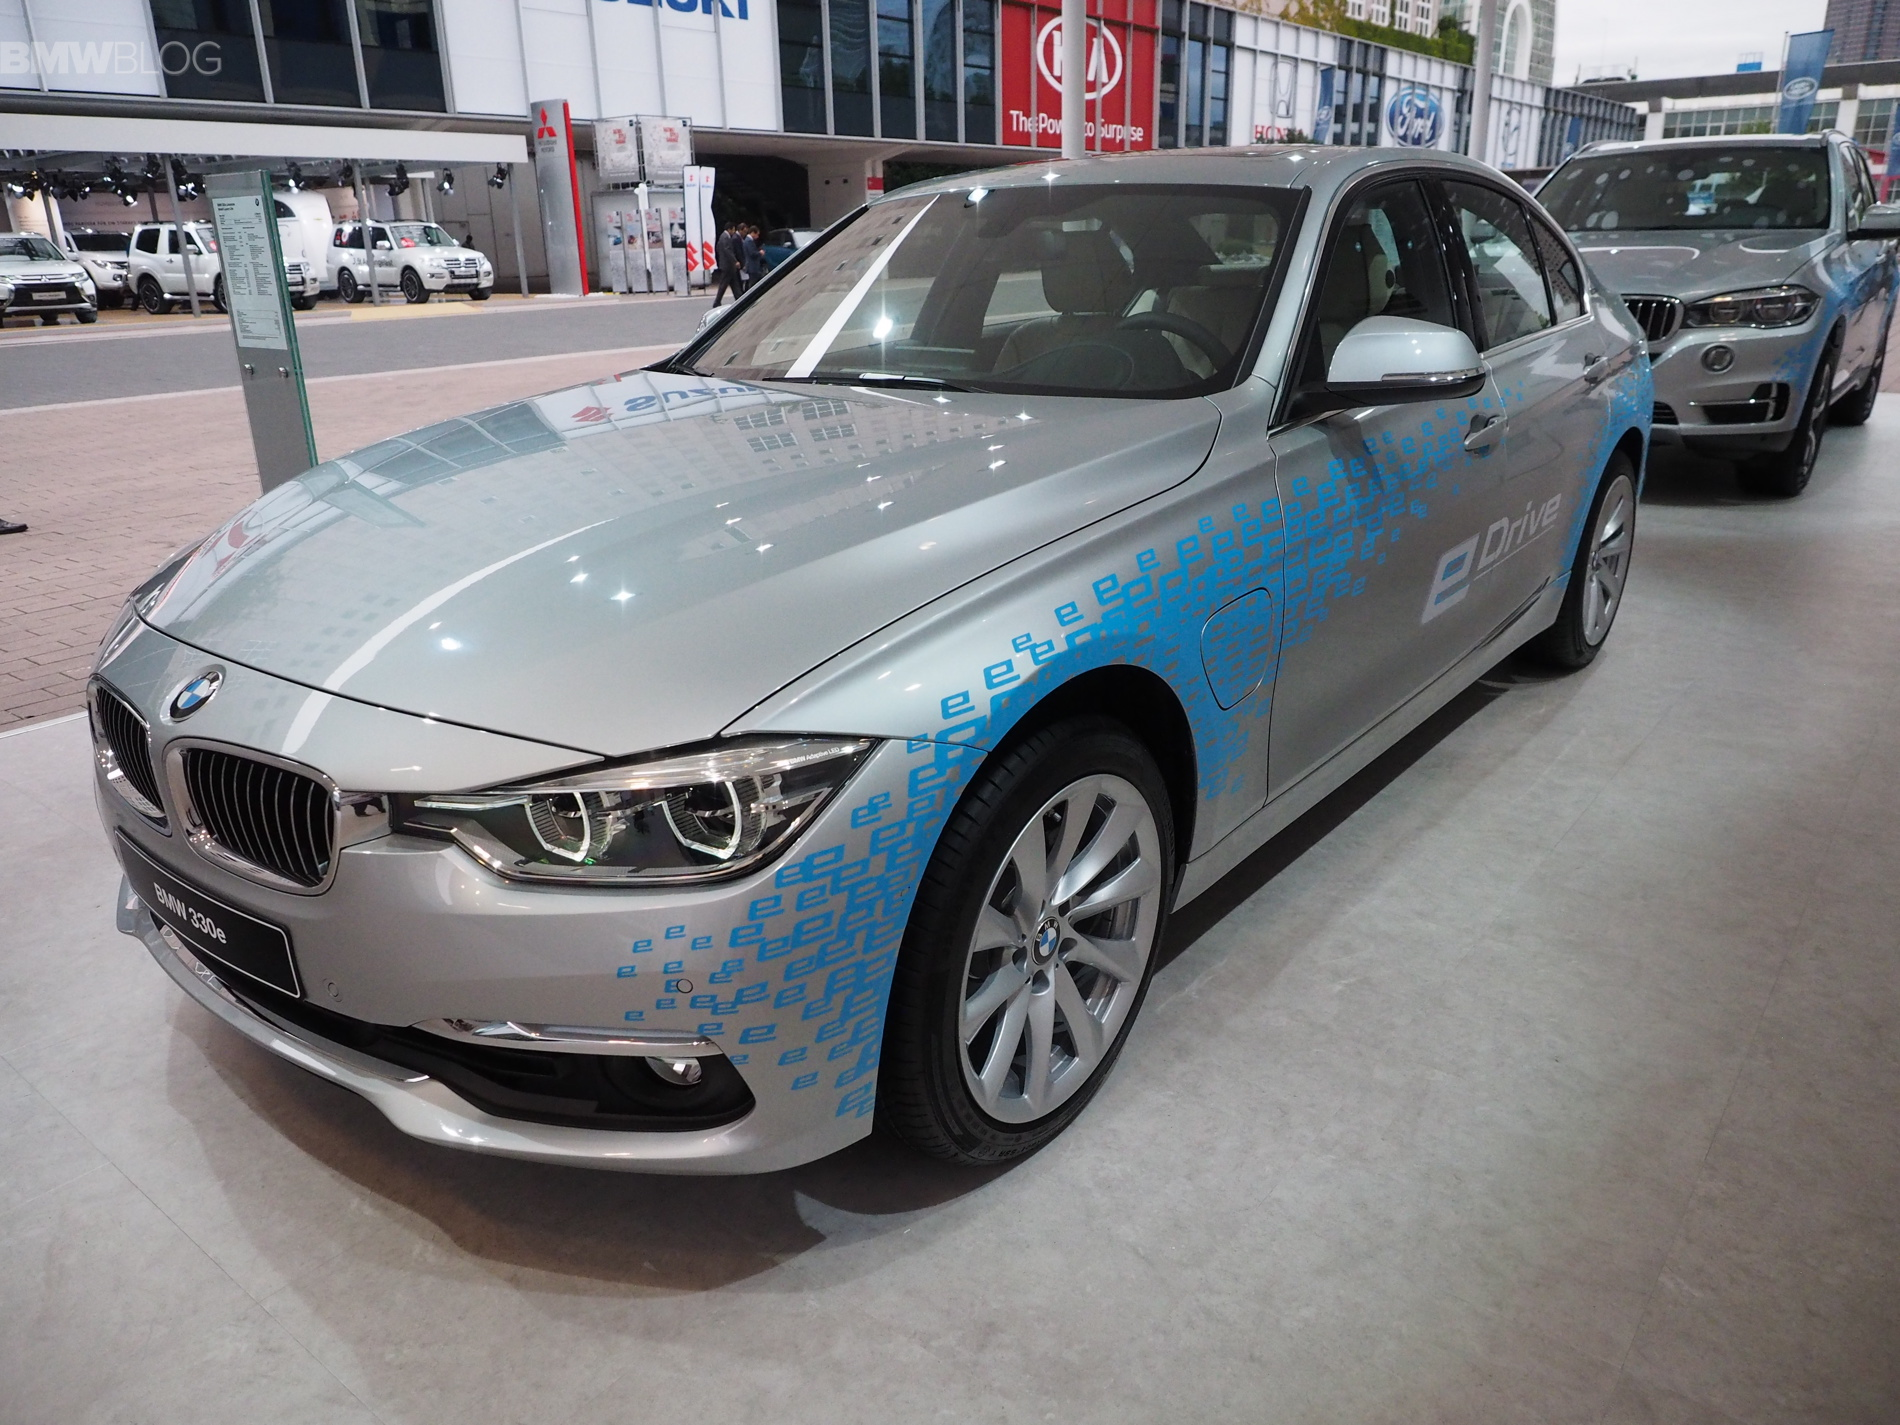 BMW North America releases the pricing for the 2016 BMW 330e plug-in hybrid